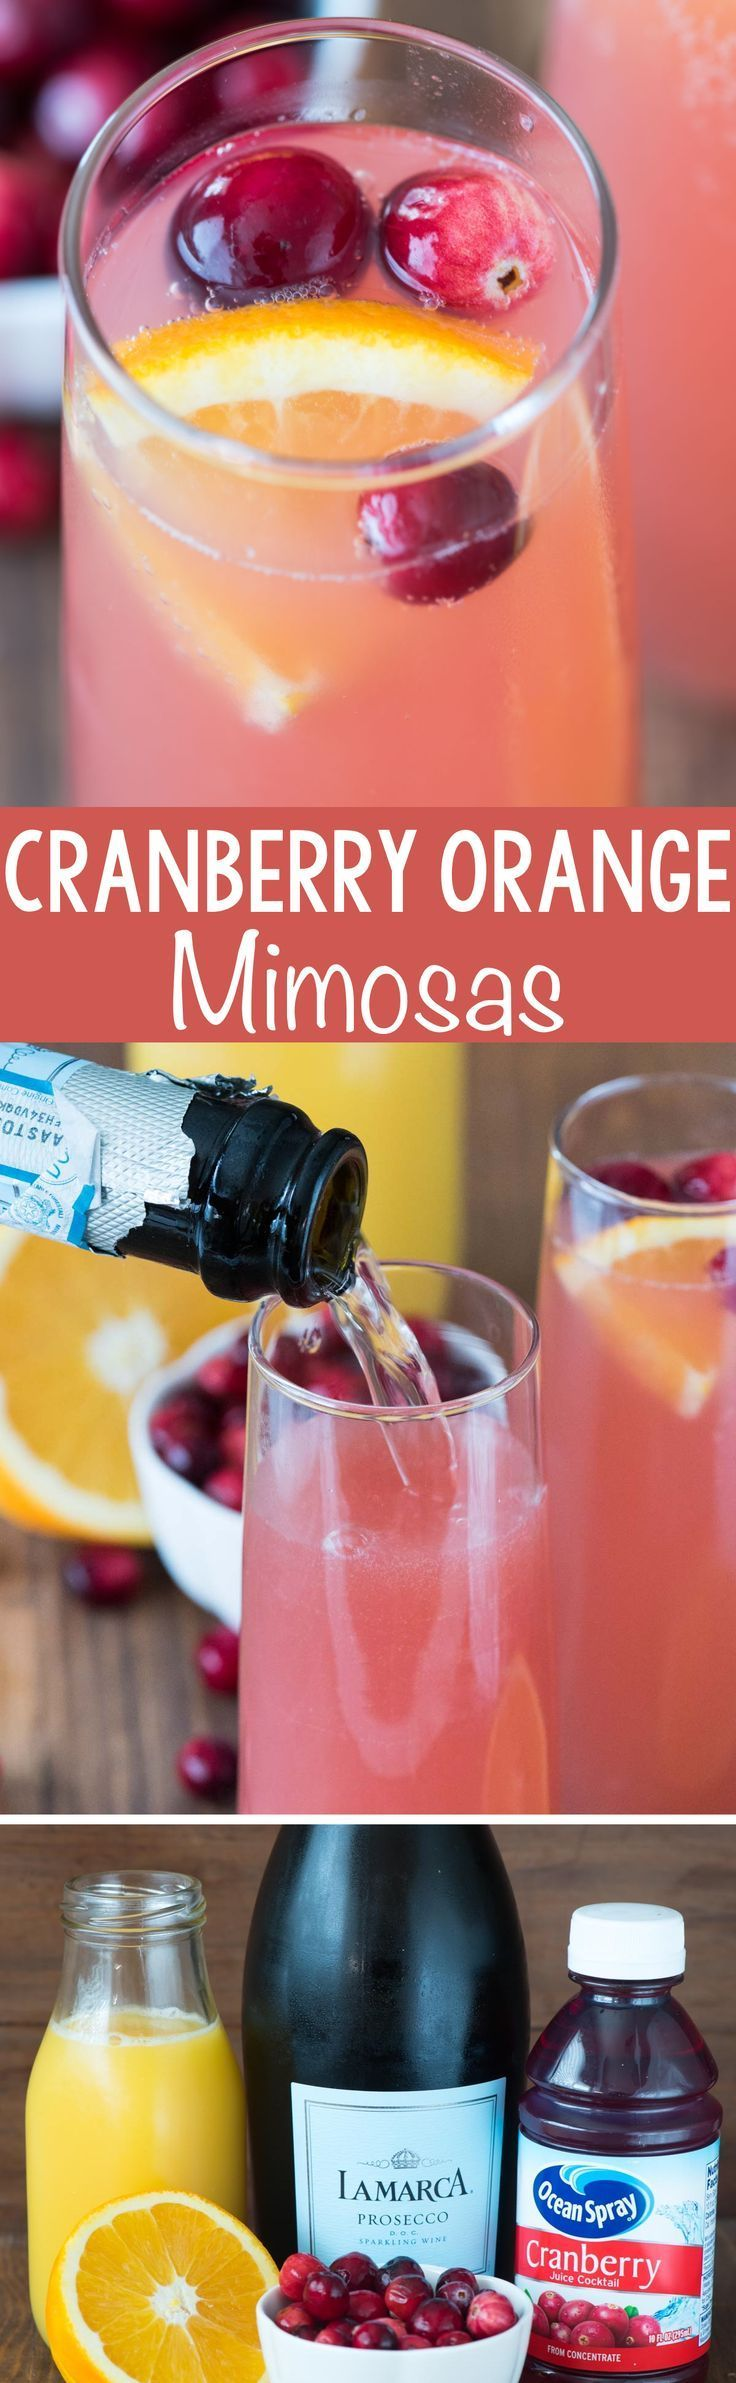 Cranberry Orange Mimosa - this easy 3 ingredient cocktail recipe is perfect for brunch or even as a bellini at a cocktail party!